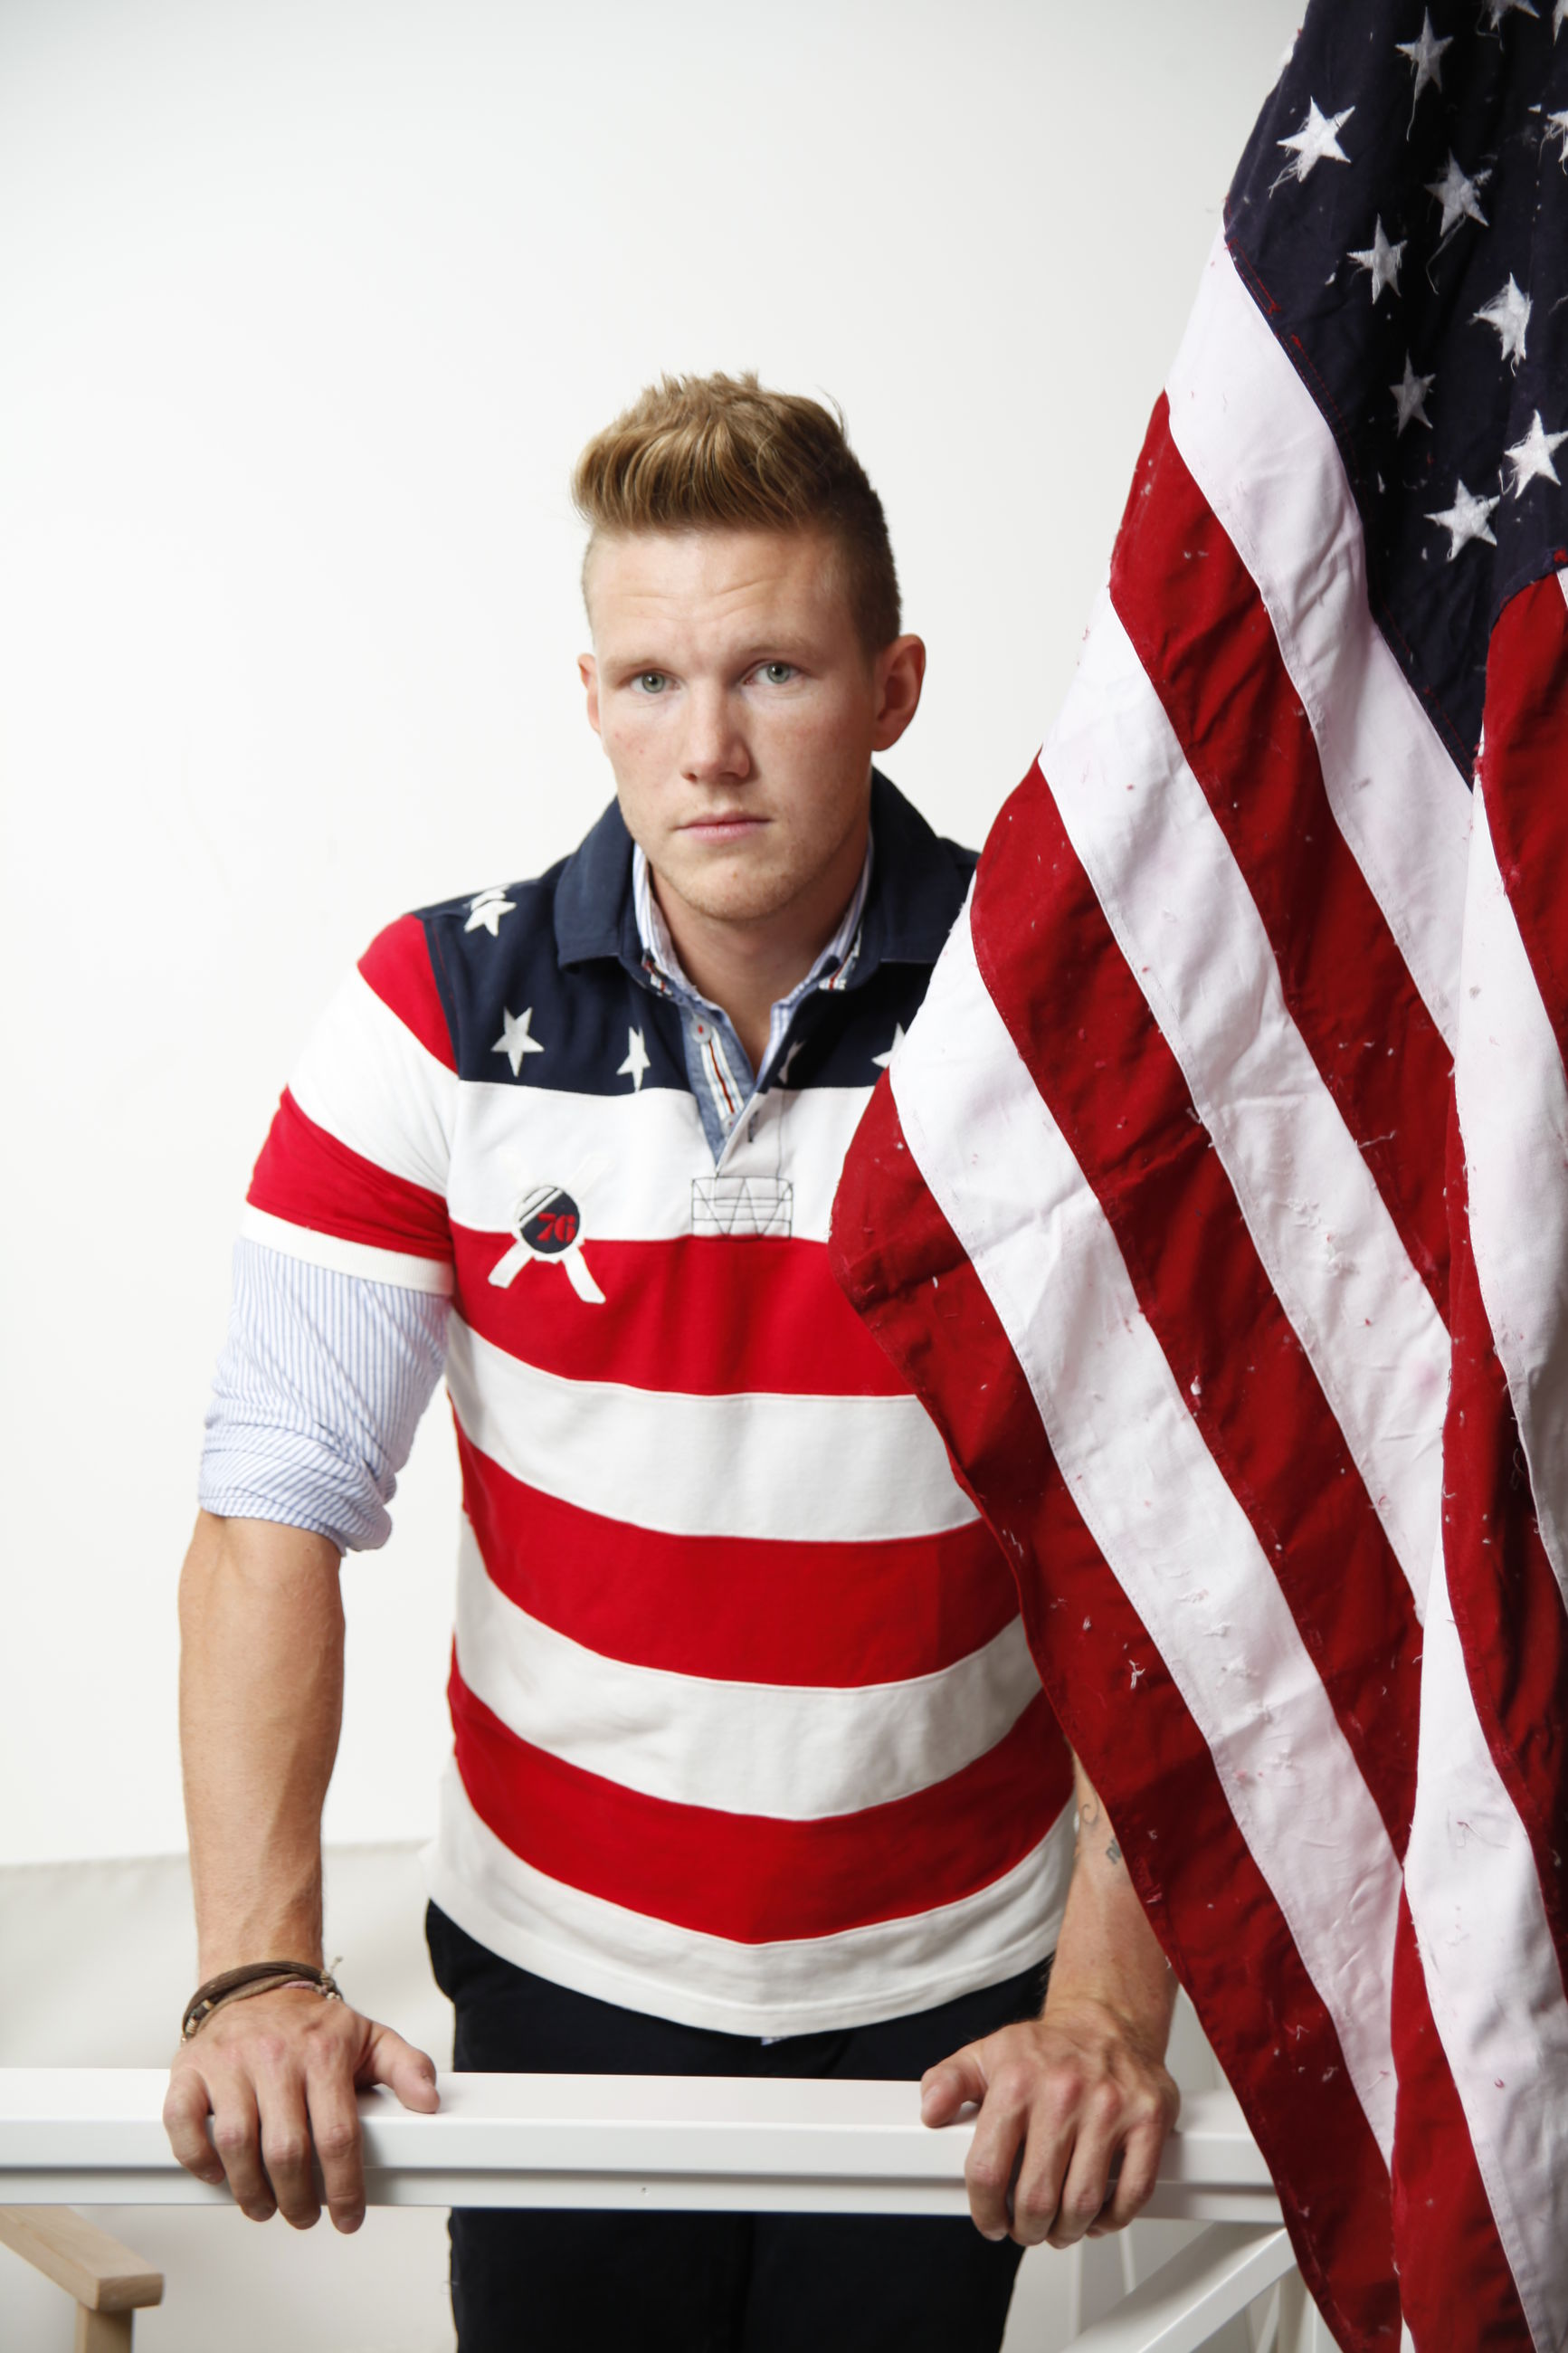 lifestyles, casual clothing, leisure activity, person, front view, young men, standing, patriotism, red, three quarter length, striped, looking at camera, young adult, smiling, flag, national flag, men